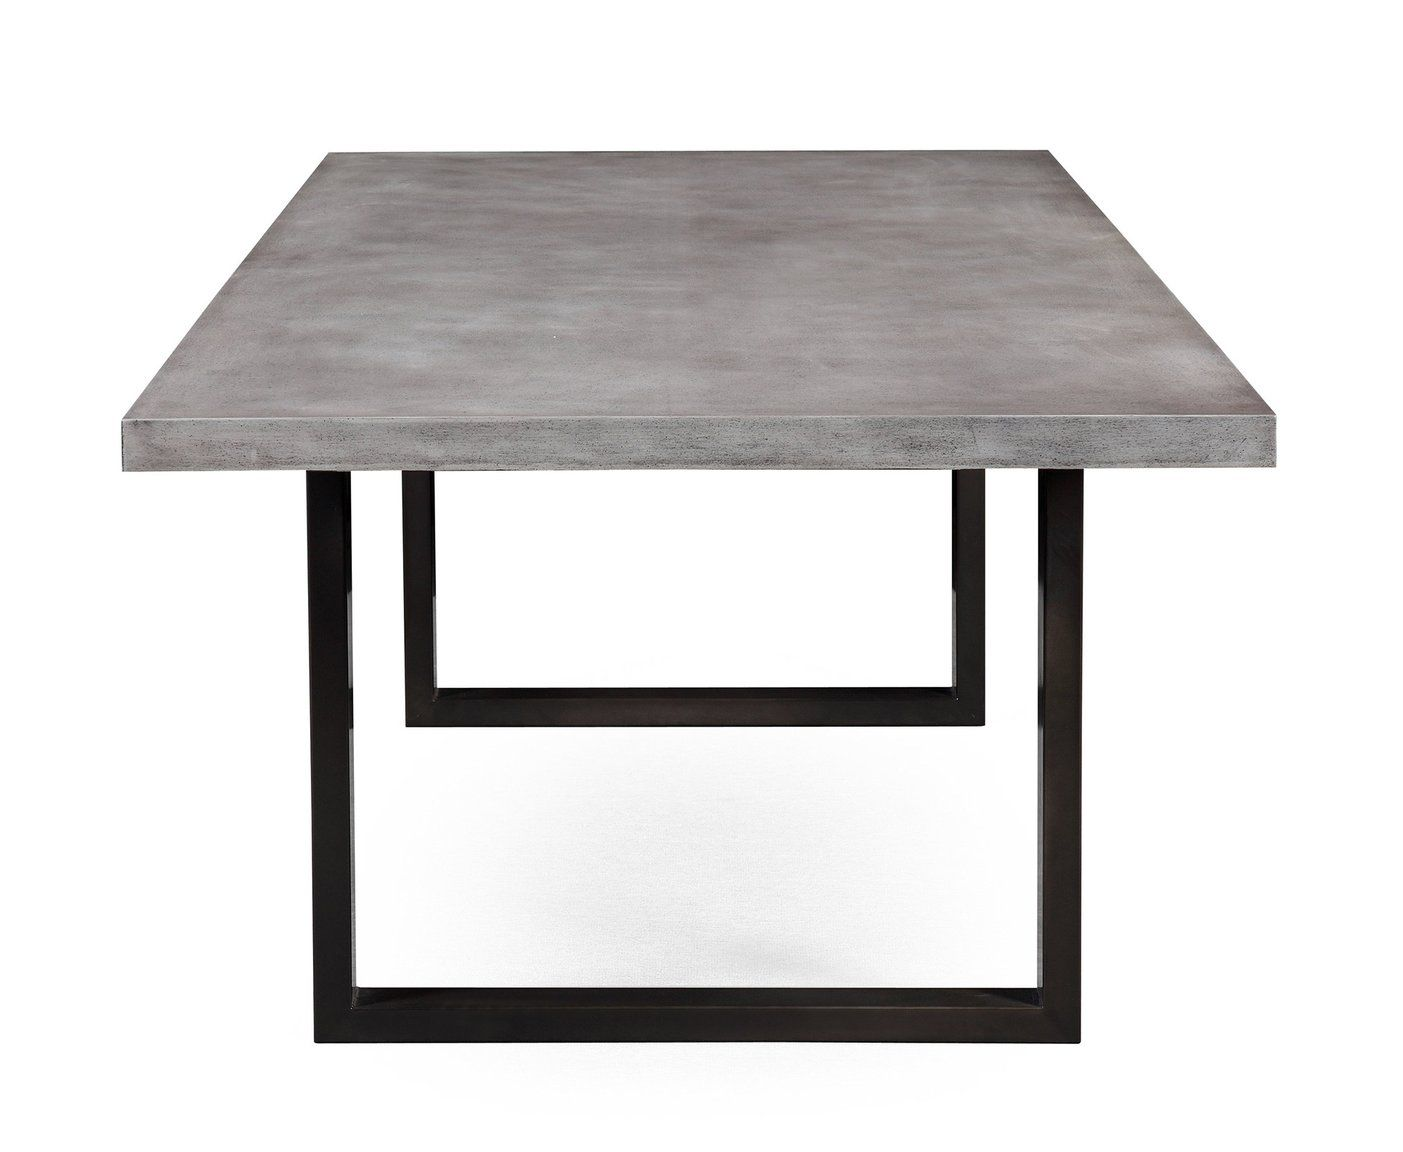 Edna Concrete Veneer Table Concrete Dining Table Dining Table